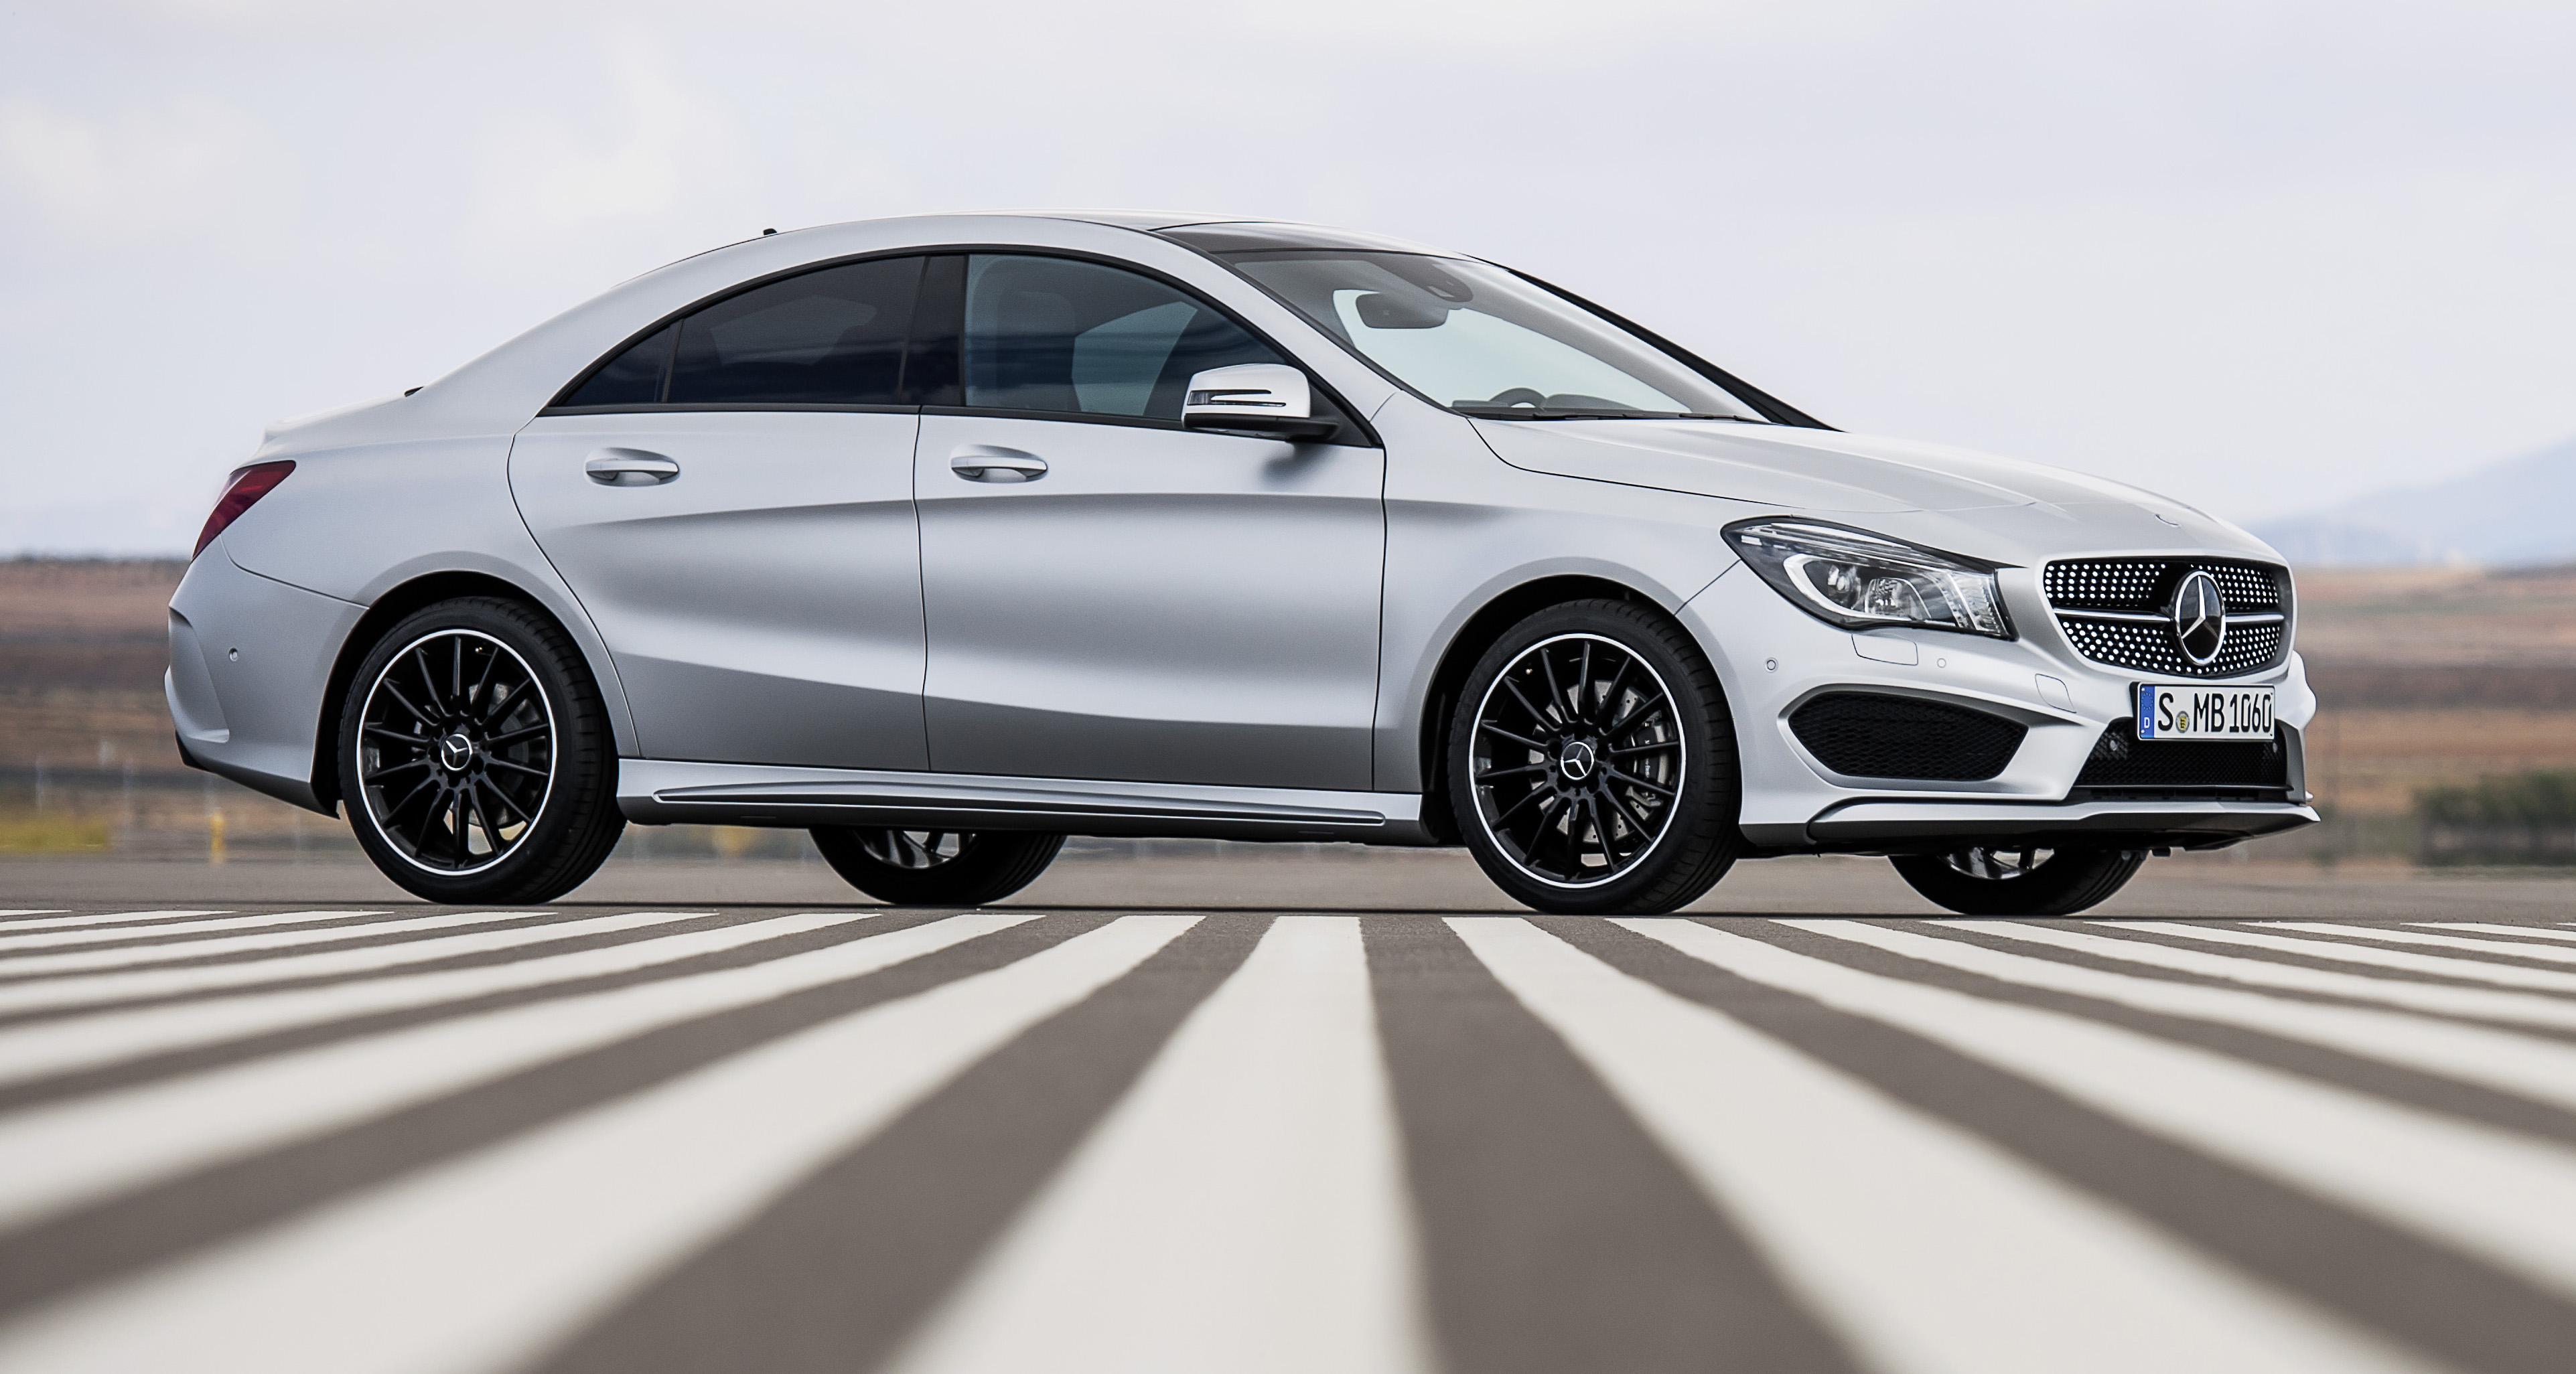 New MercedesBenz CLAClass makes its debut Image 149612